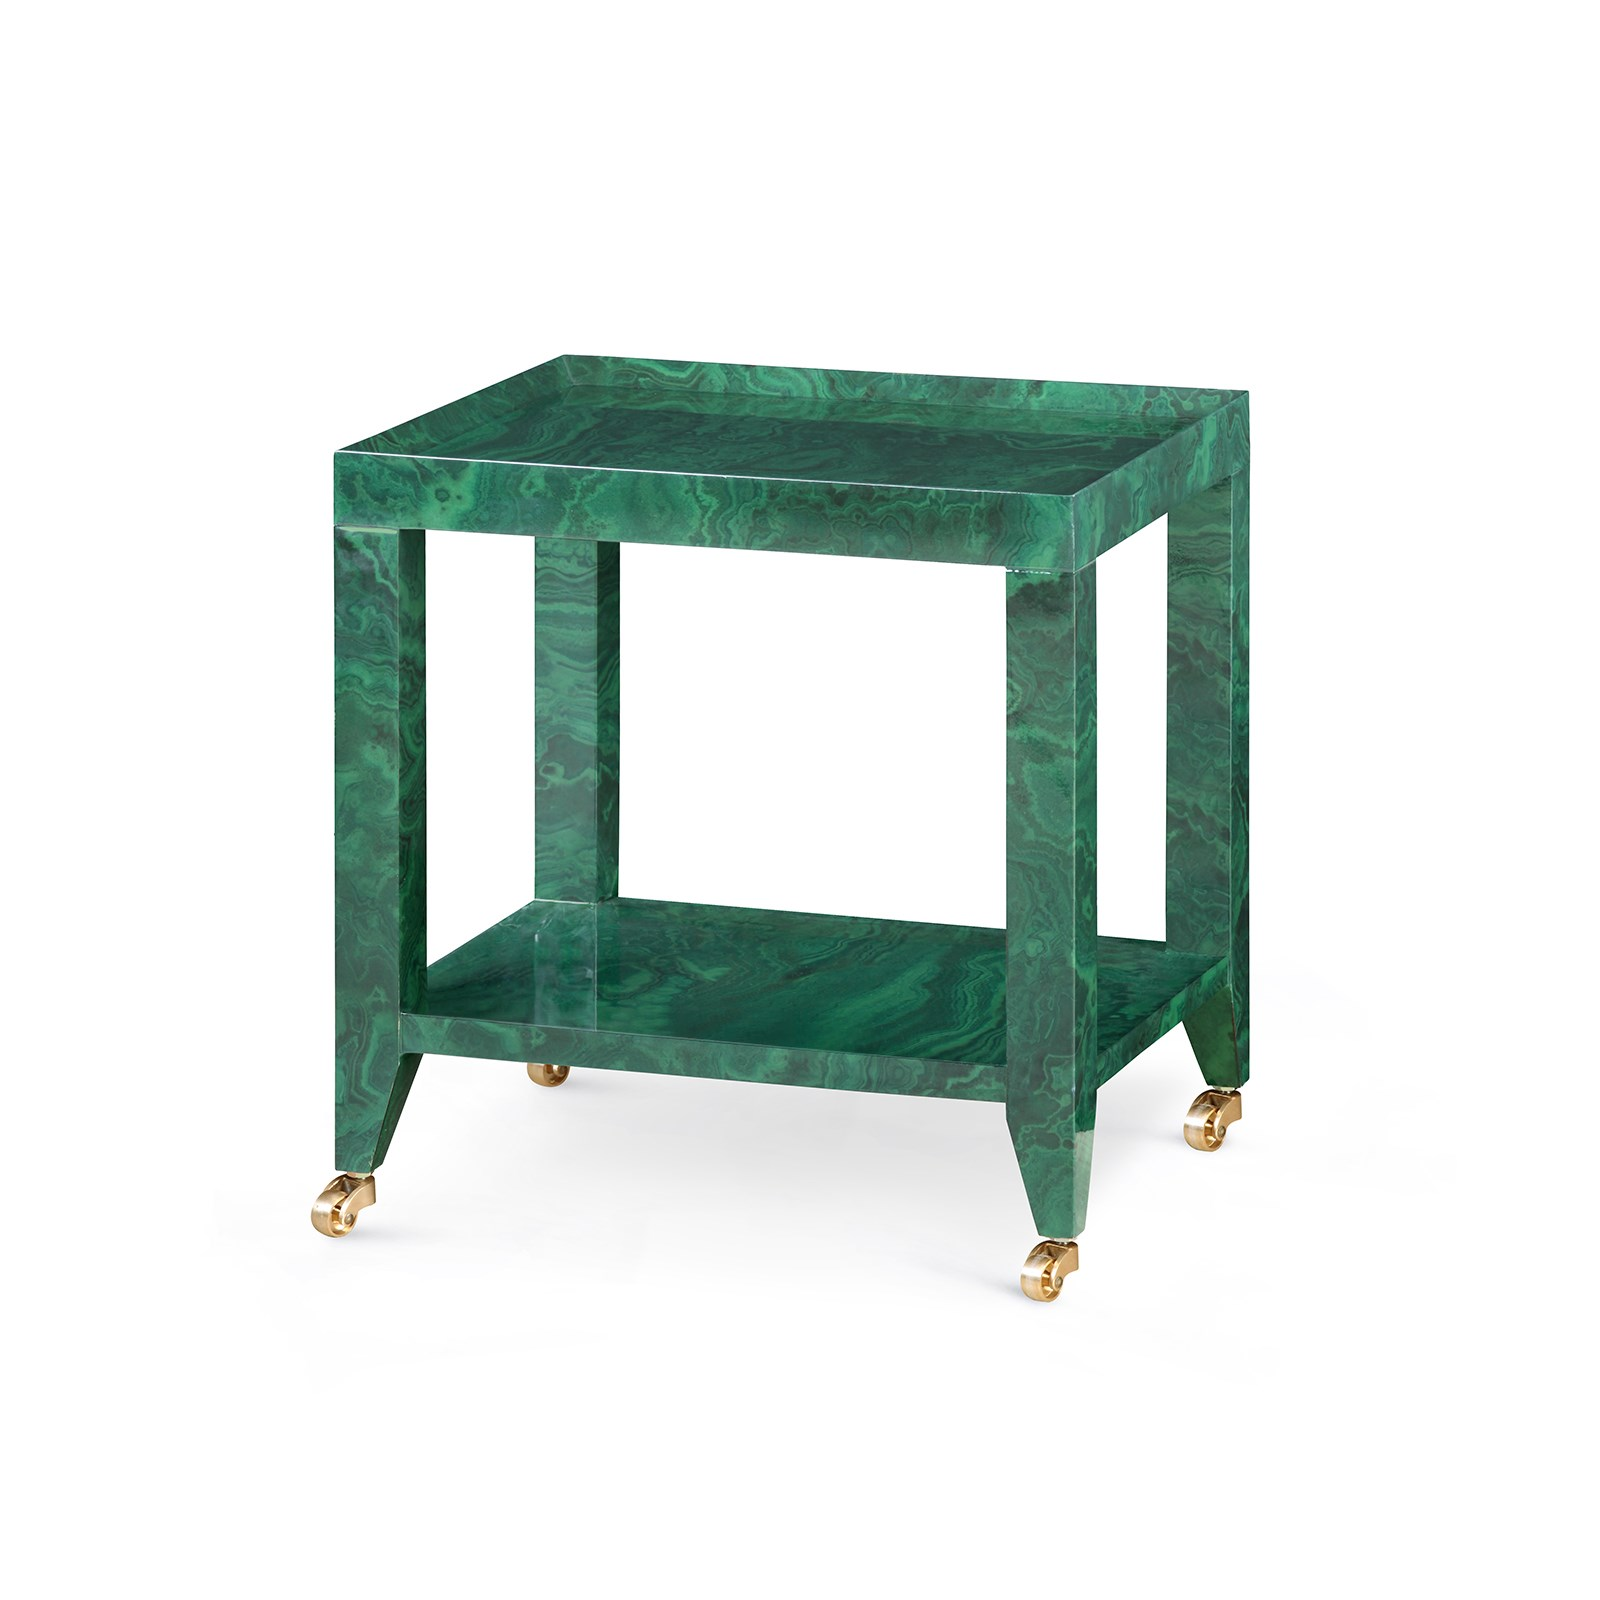 isadora tea table malachite green bungalow 5 isadora tea table malachite green bungalow 5 amazoncom oriental furniture rosewood korean tea table